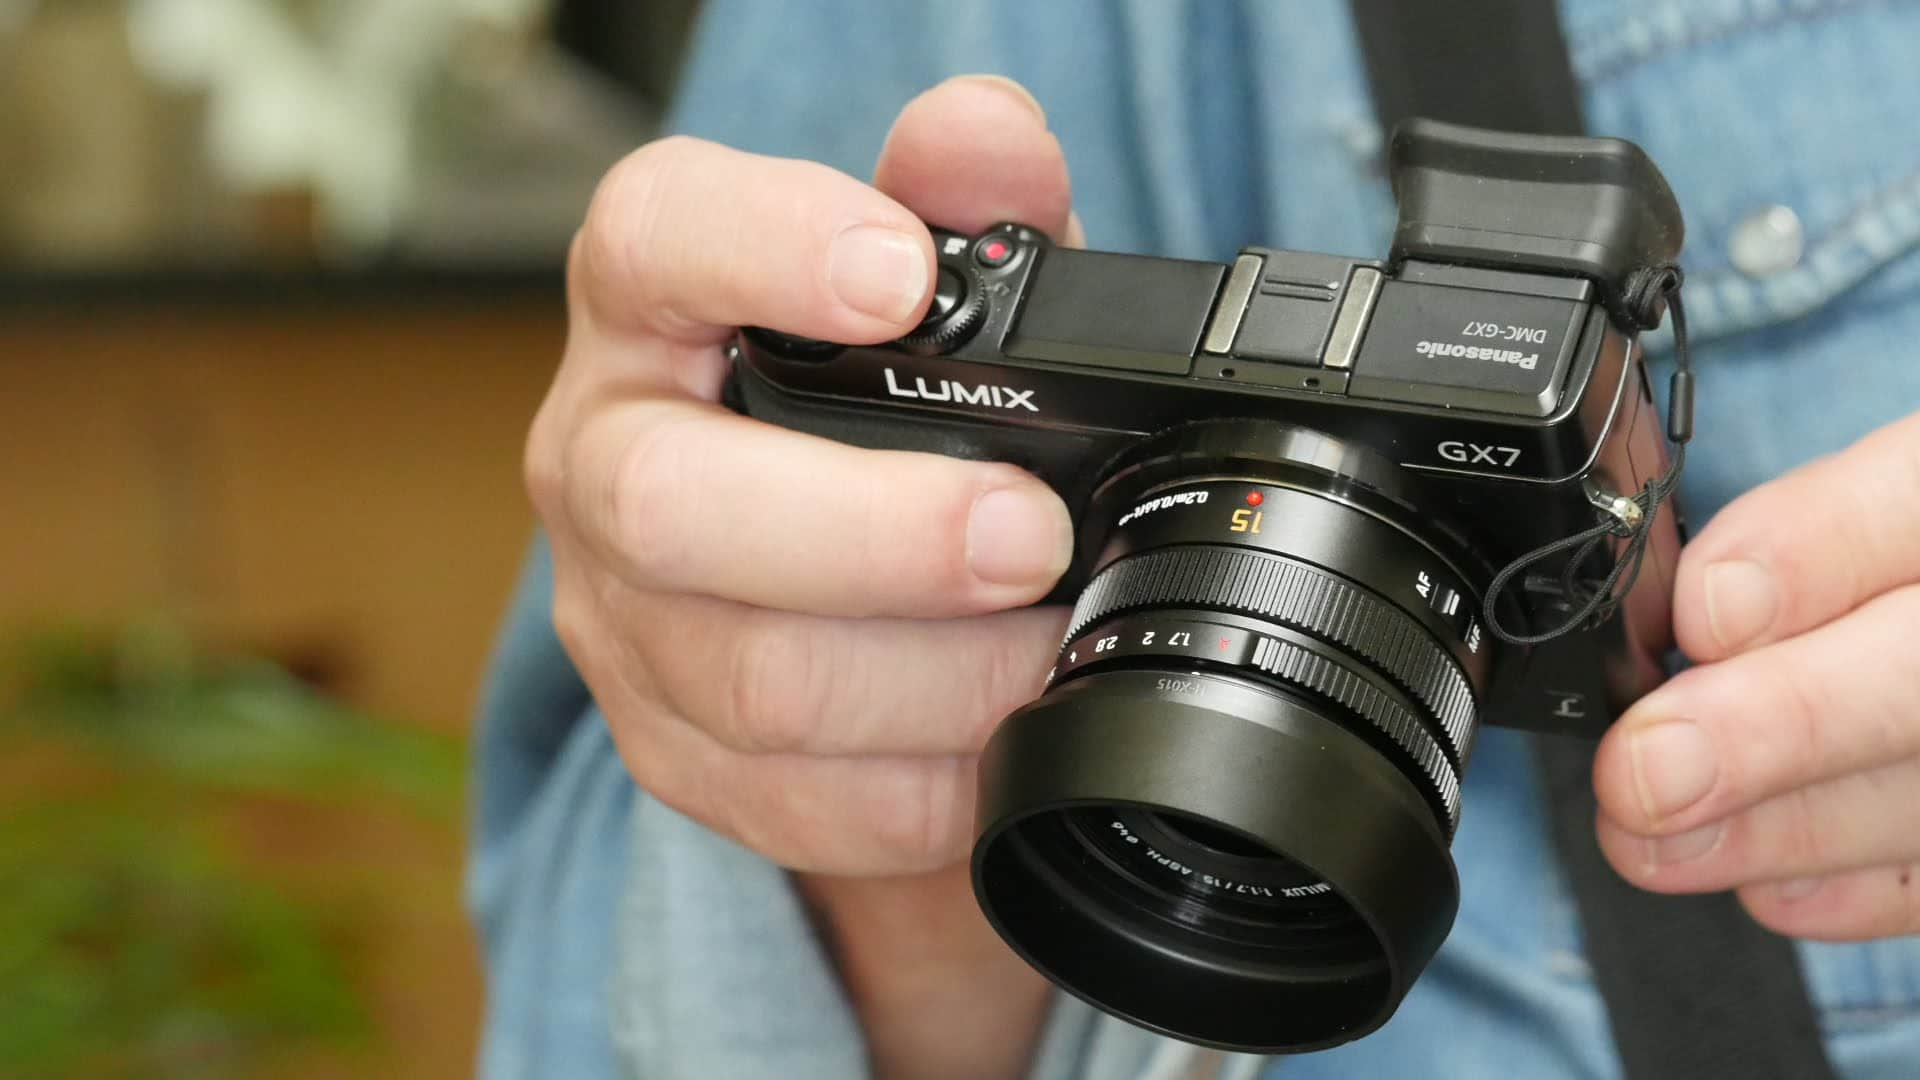 Panasonic 15mm 1.7